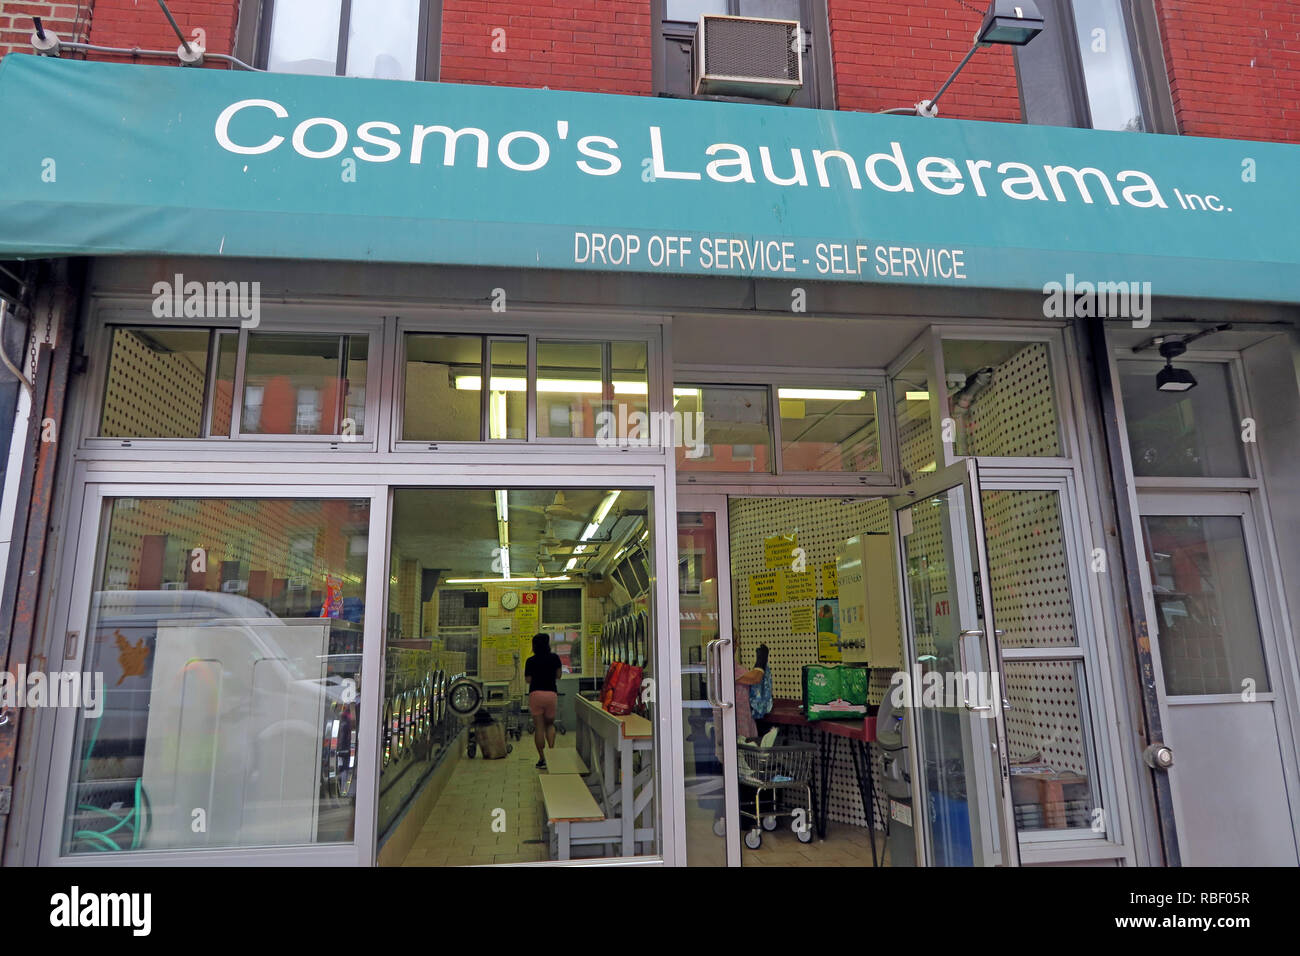 Cosmo Launderama, launderette, 142 1st Avenue #9, New York, NY 10009, USA Stock Photo